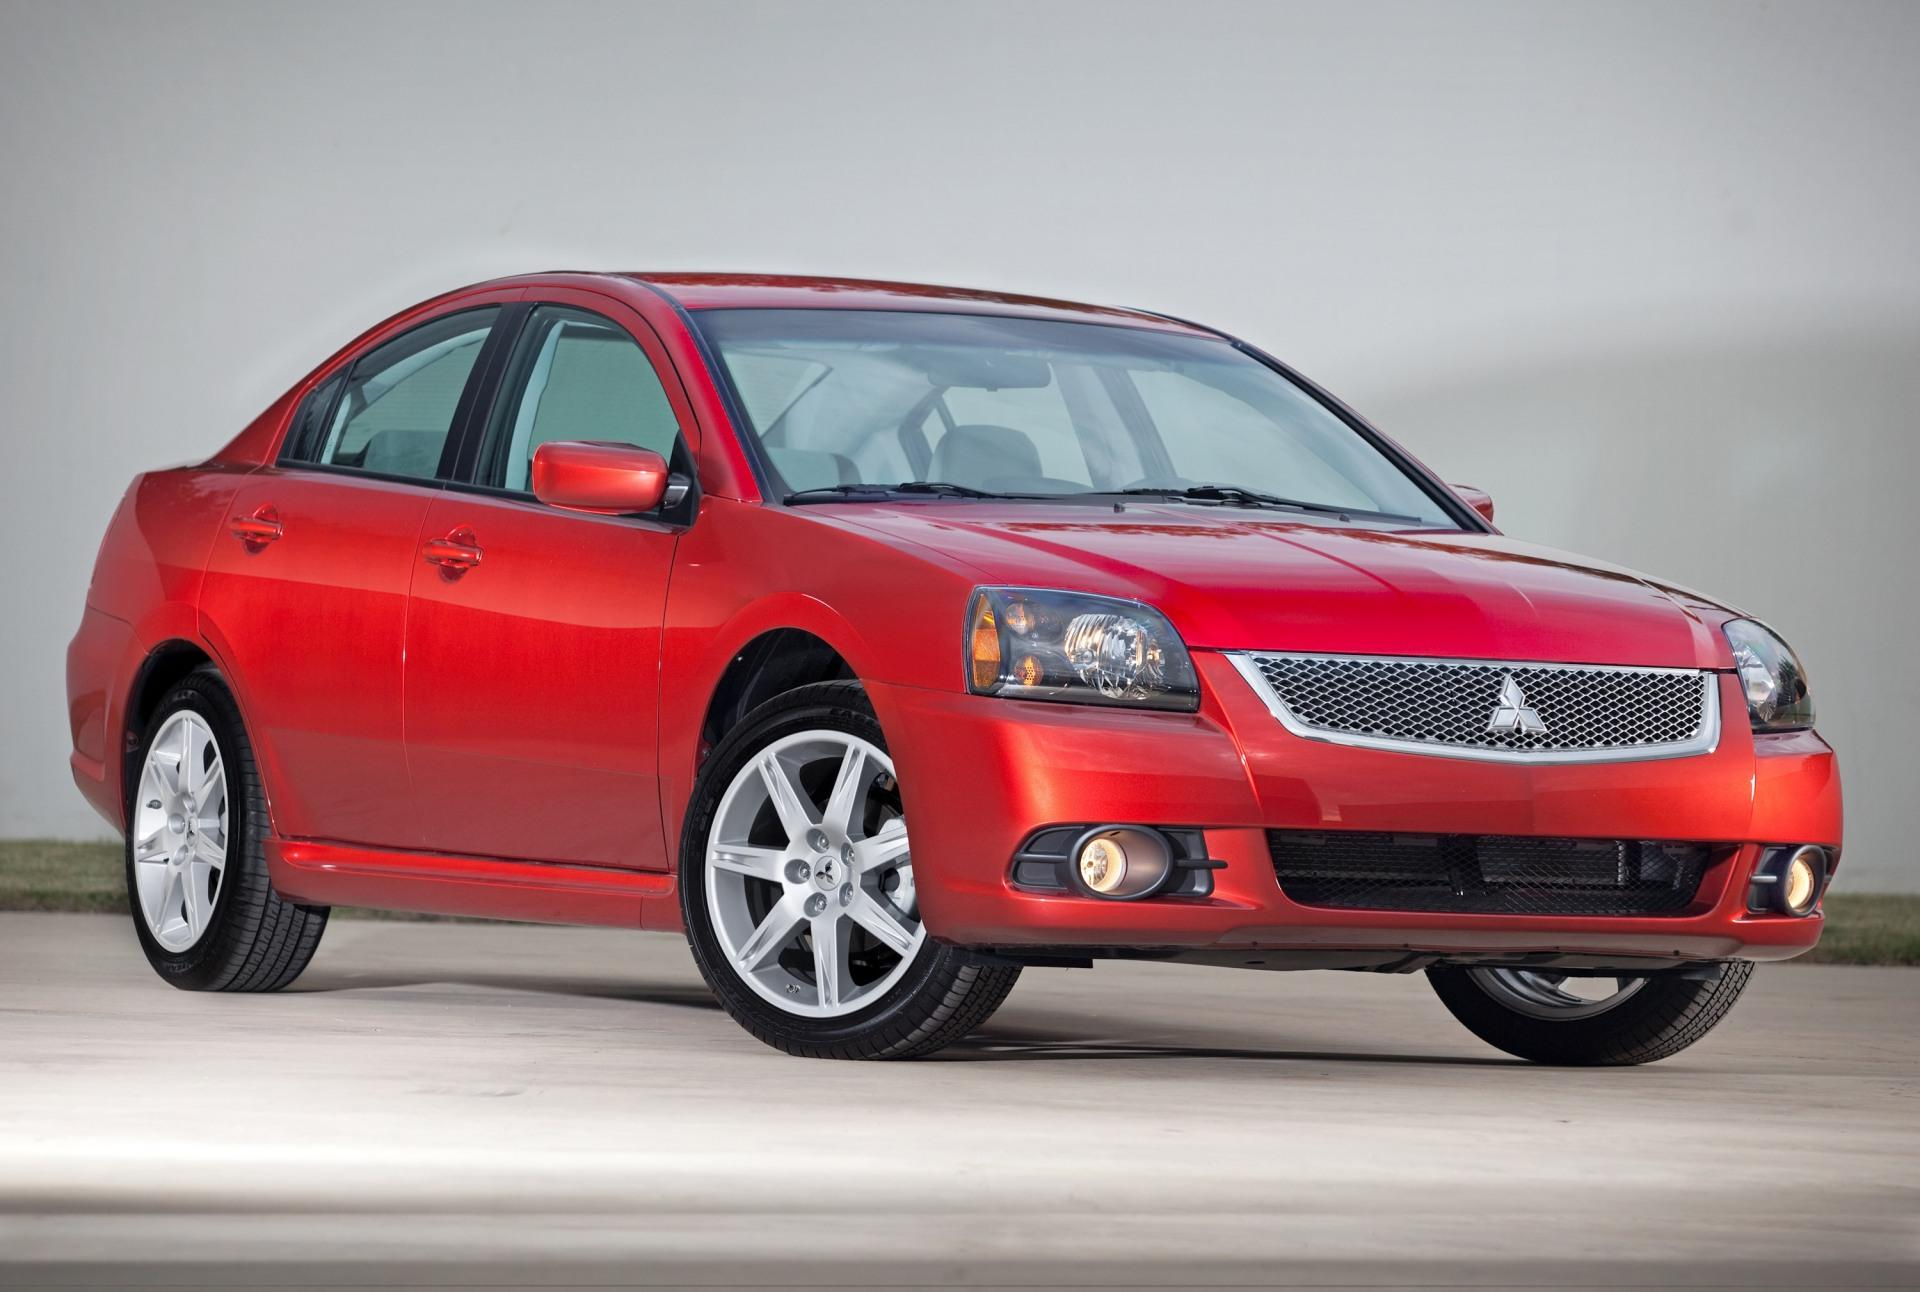 2010 Mitsubishi Galant News And Information